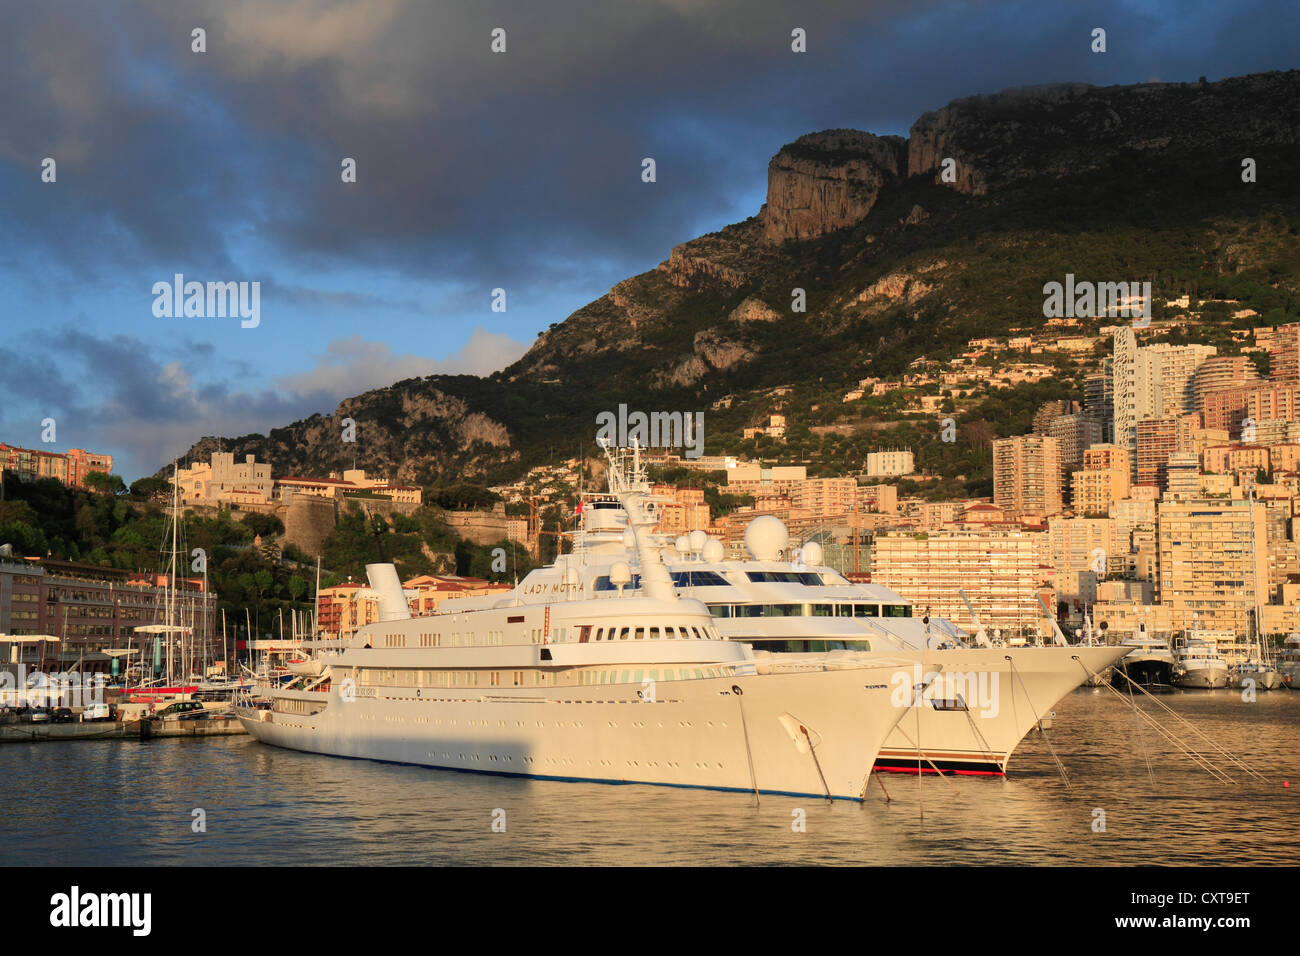 Port Hercule in the early morning with the cruisers Atlantis II and Lady Moura, Principality of Monaco, French Riviera - Stock Image